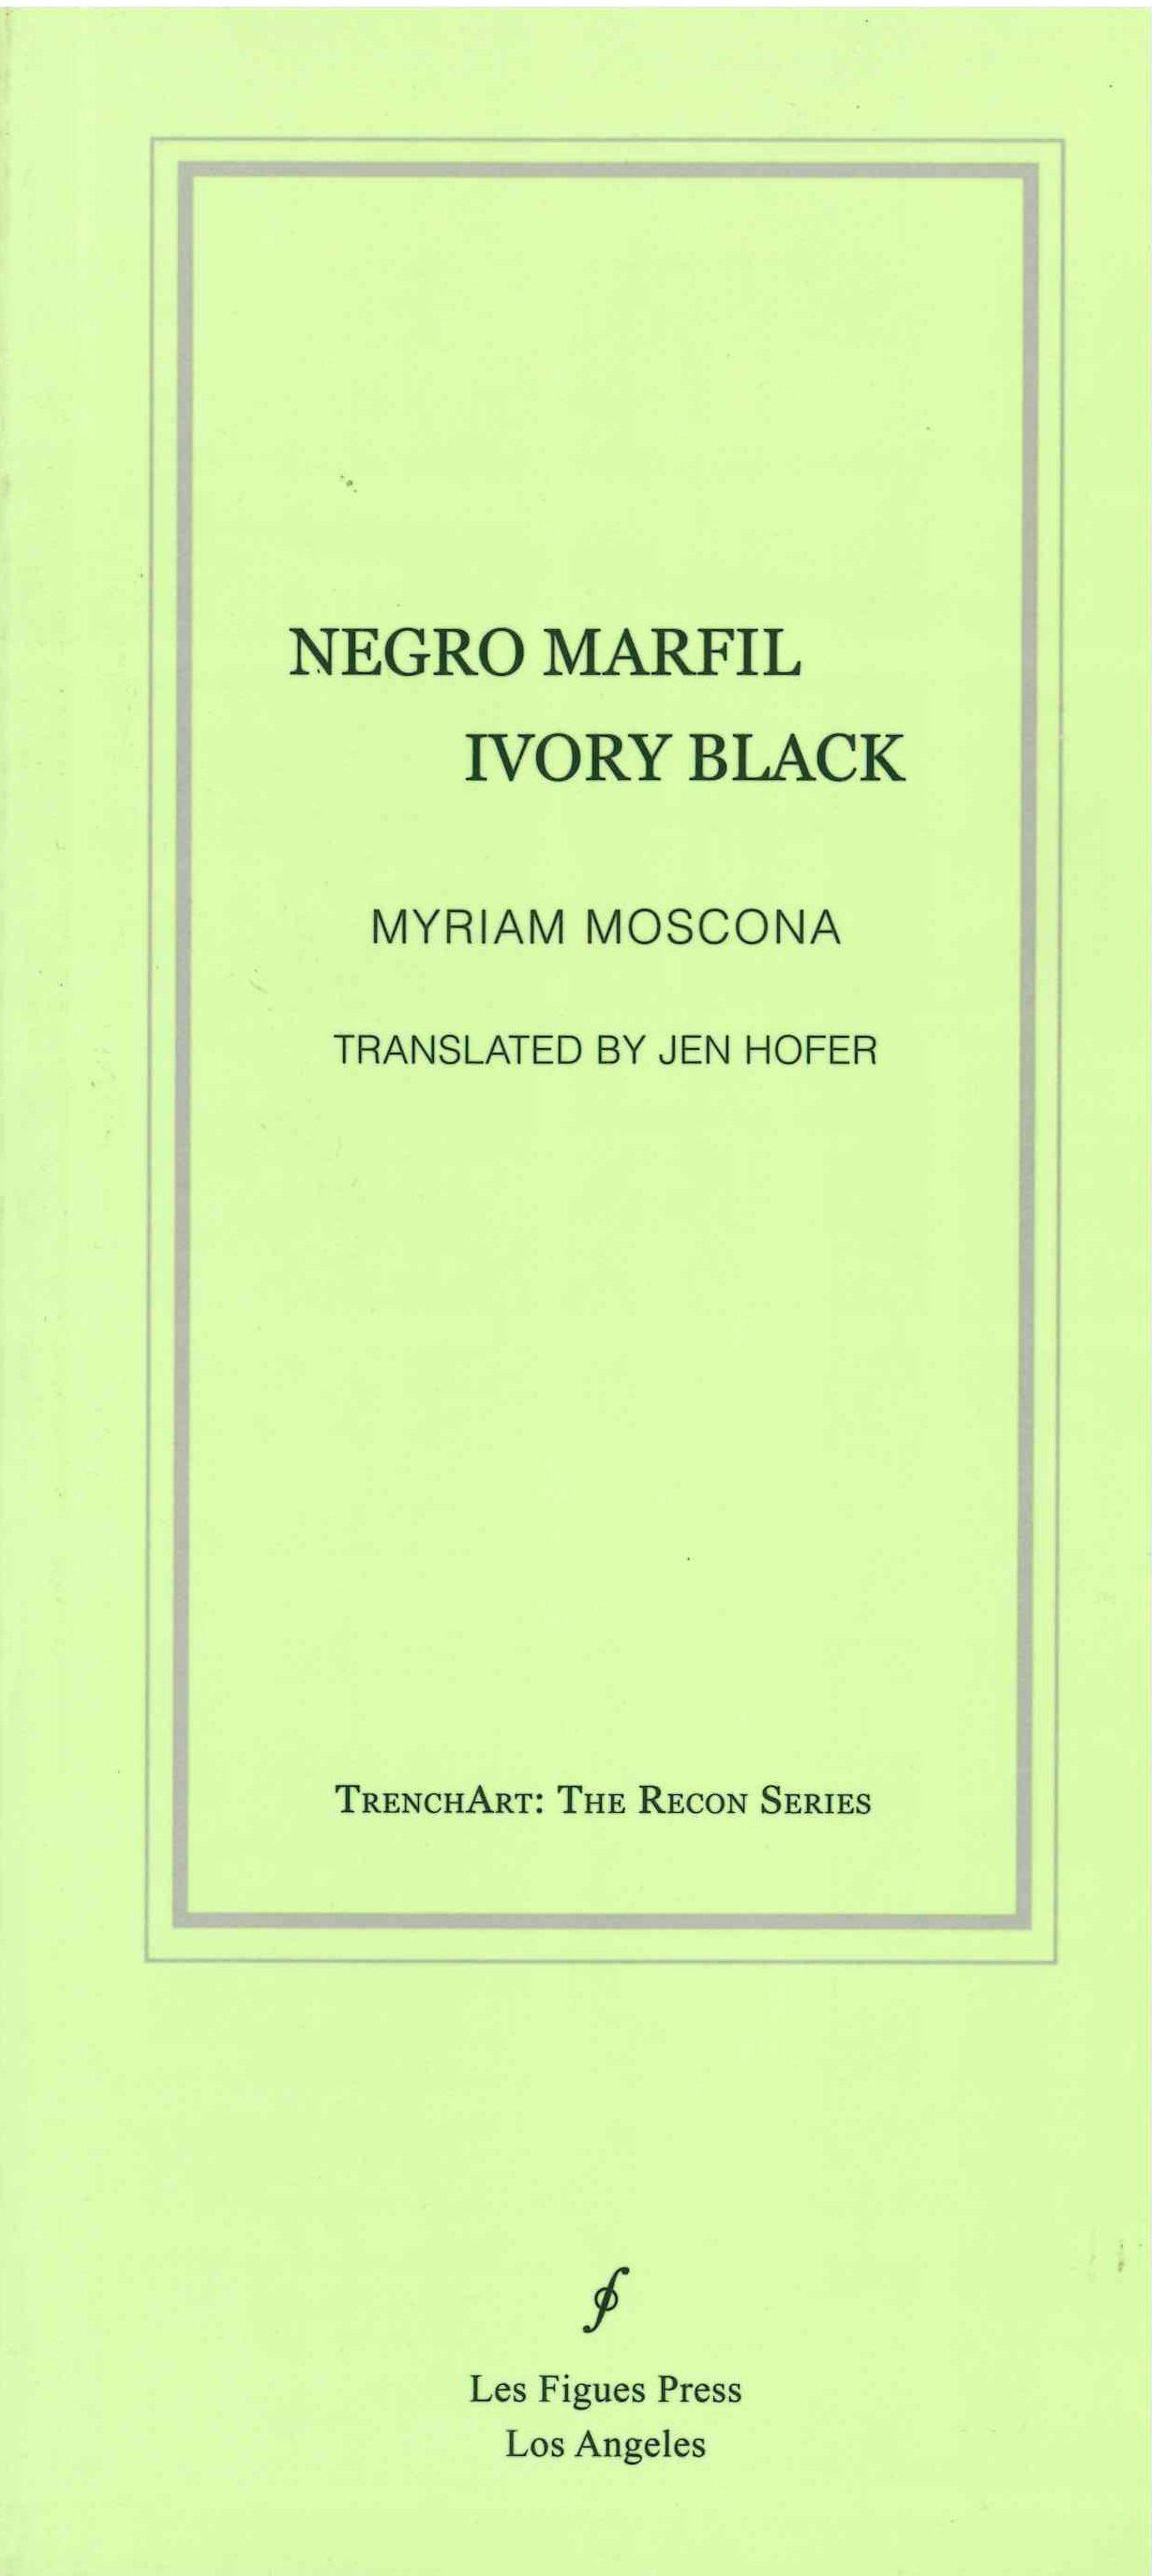 Negro marfil / Ivory Black | Myriam Moscona (translated by Jen Hofer) | Les Figues Press